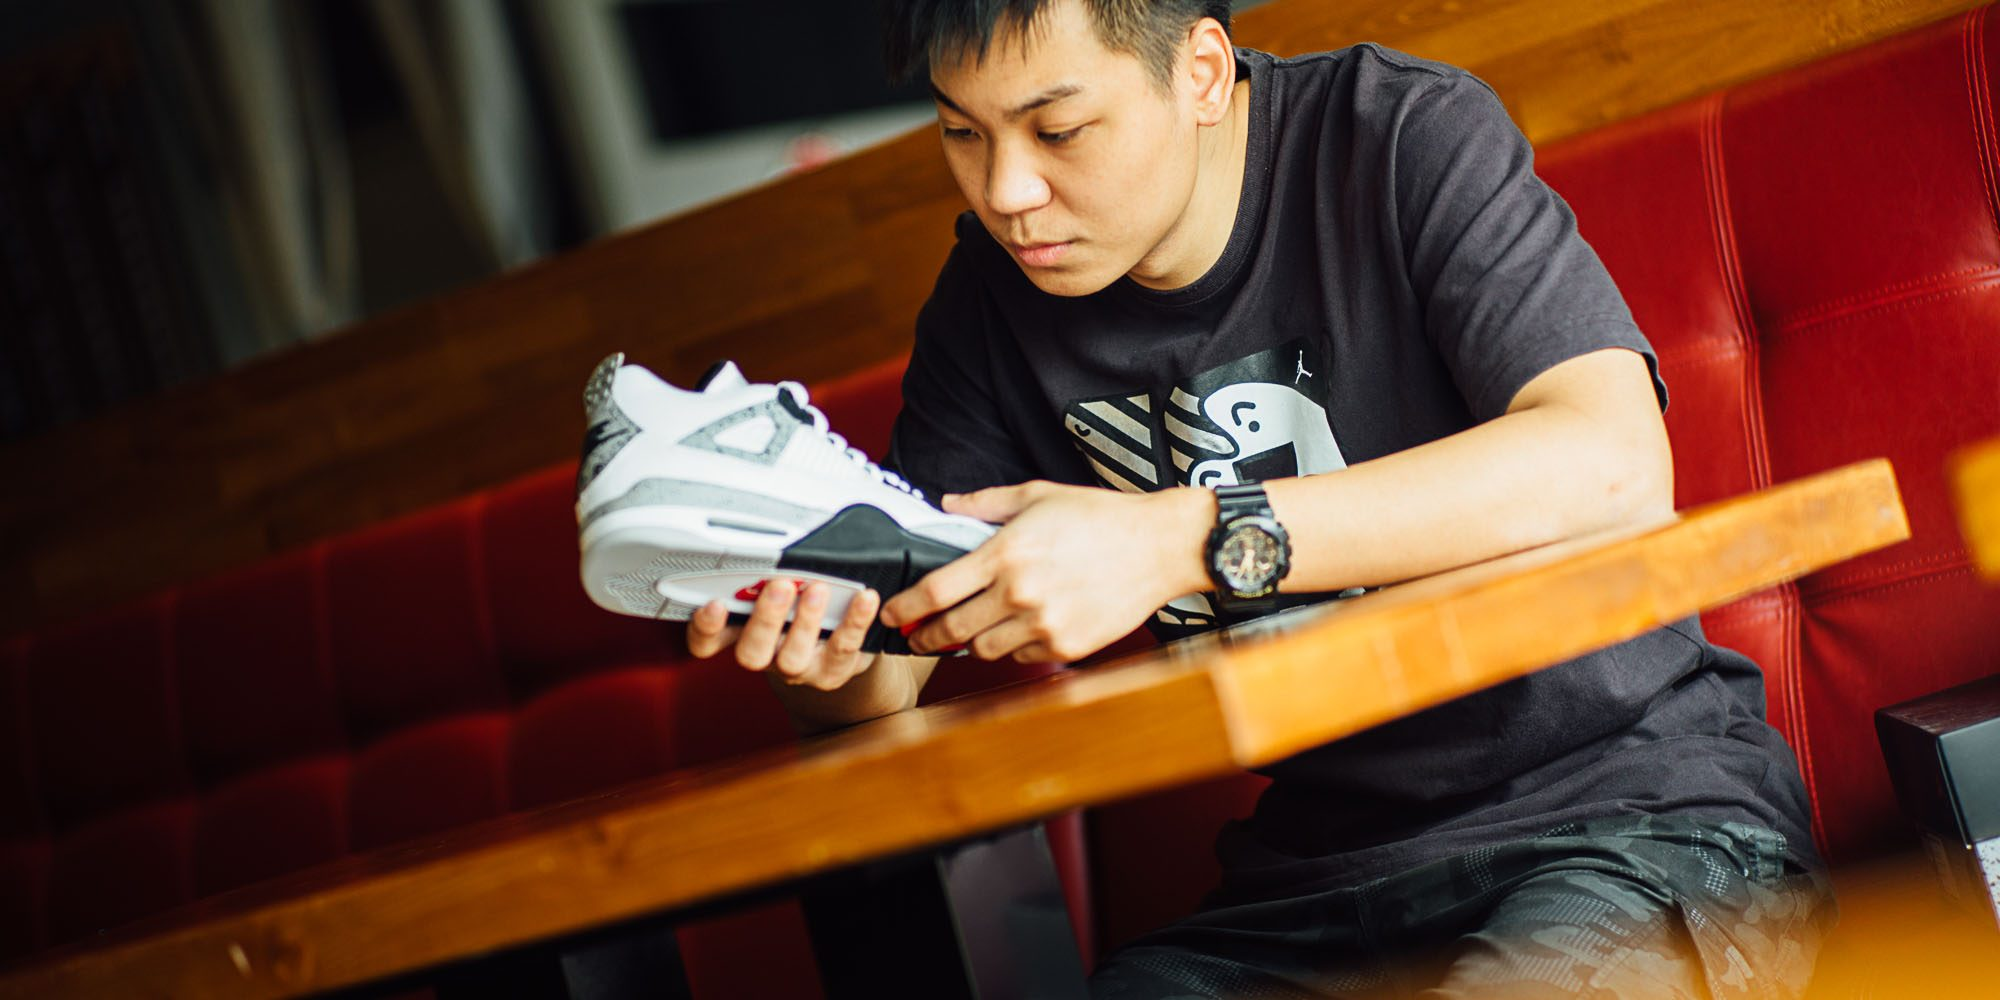 air-jordan-4-interview-jack-kaohsiung-1001411